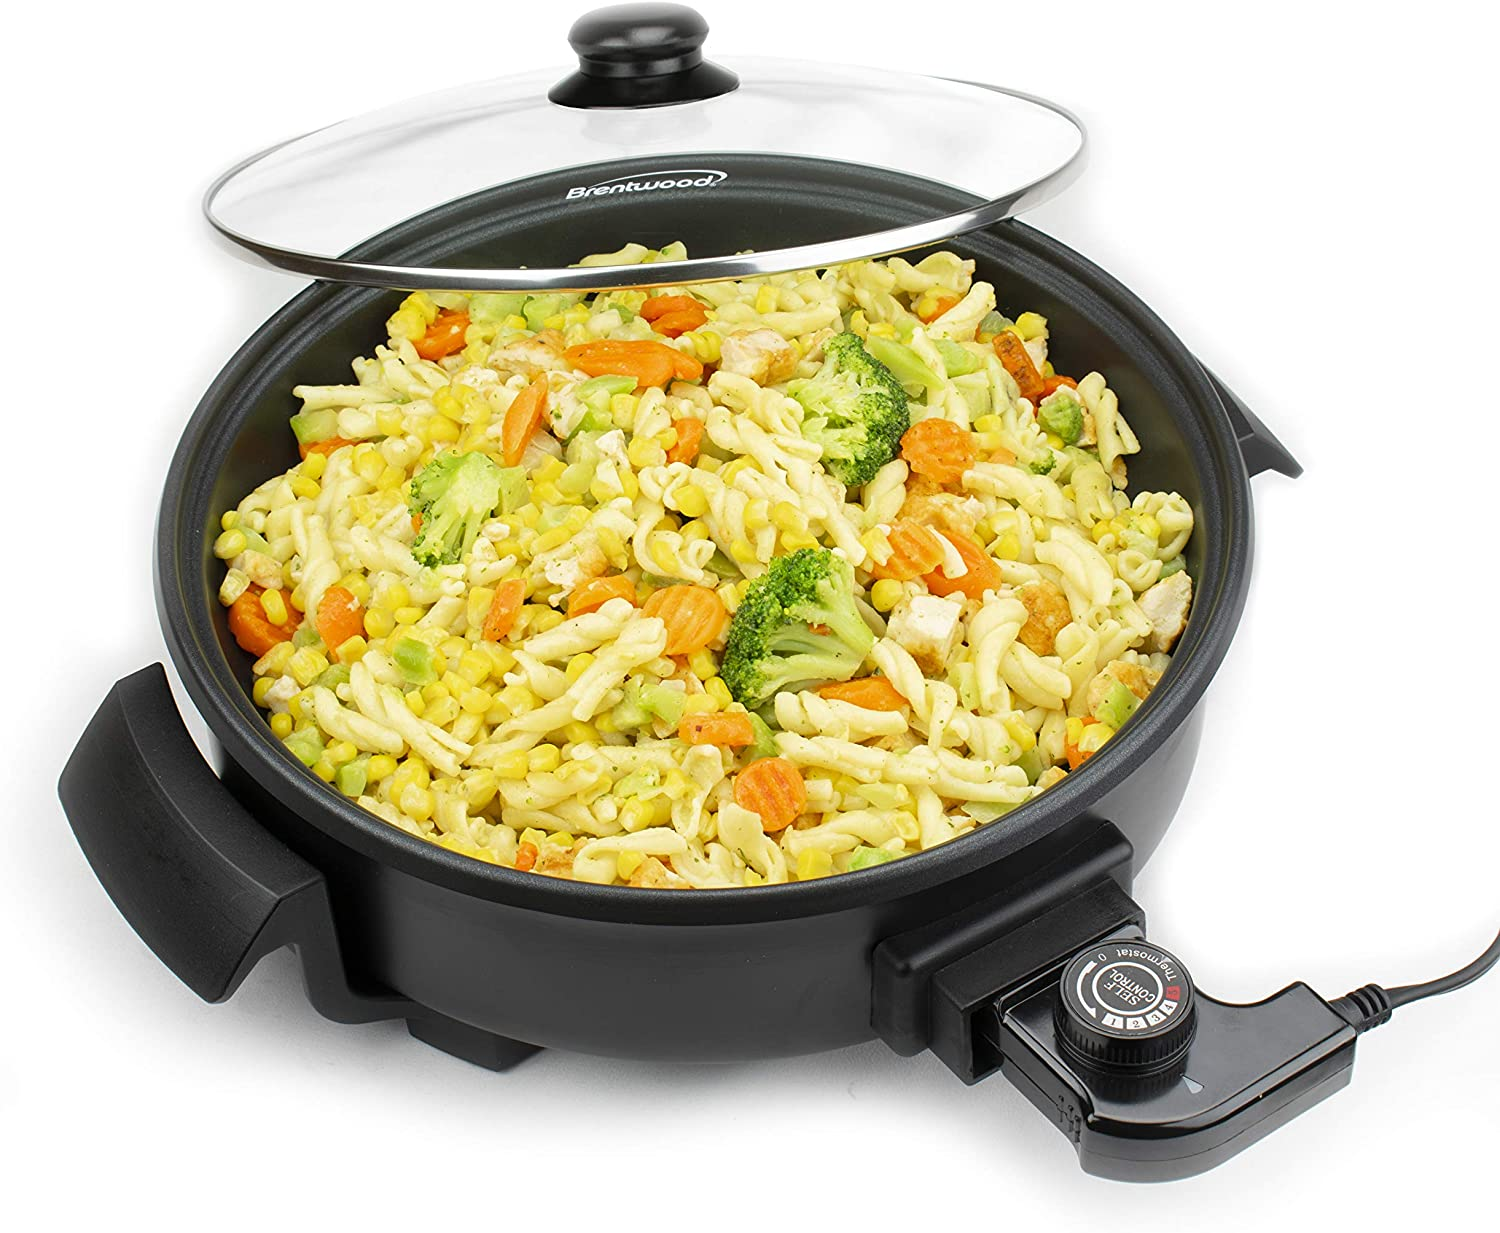 Ranking TOP10 Our shop most popular Brentwood Appliances SK67BK 12-Inch Nonstick Skil Round Electric